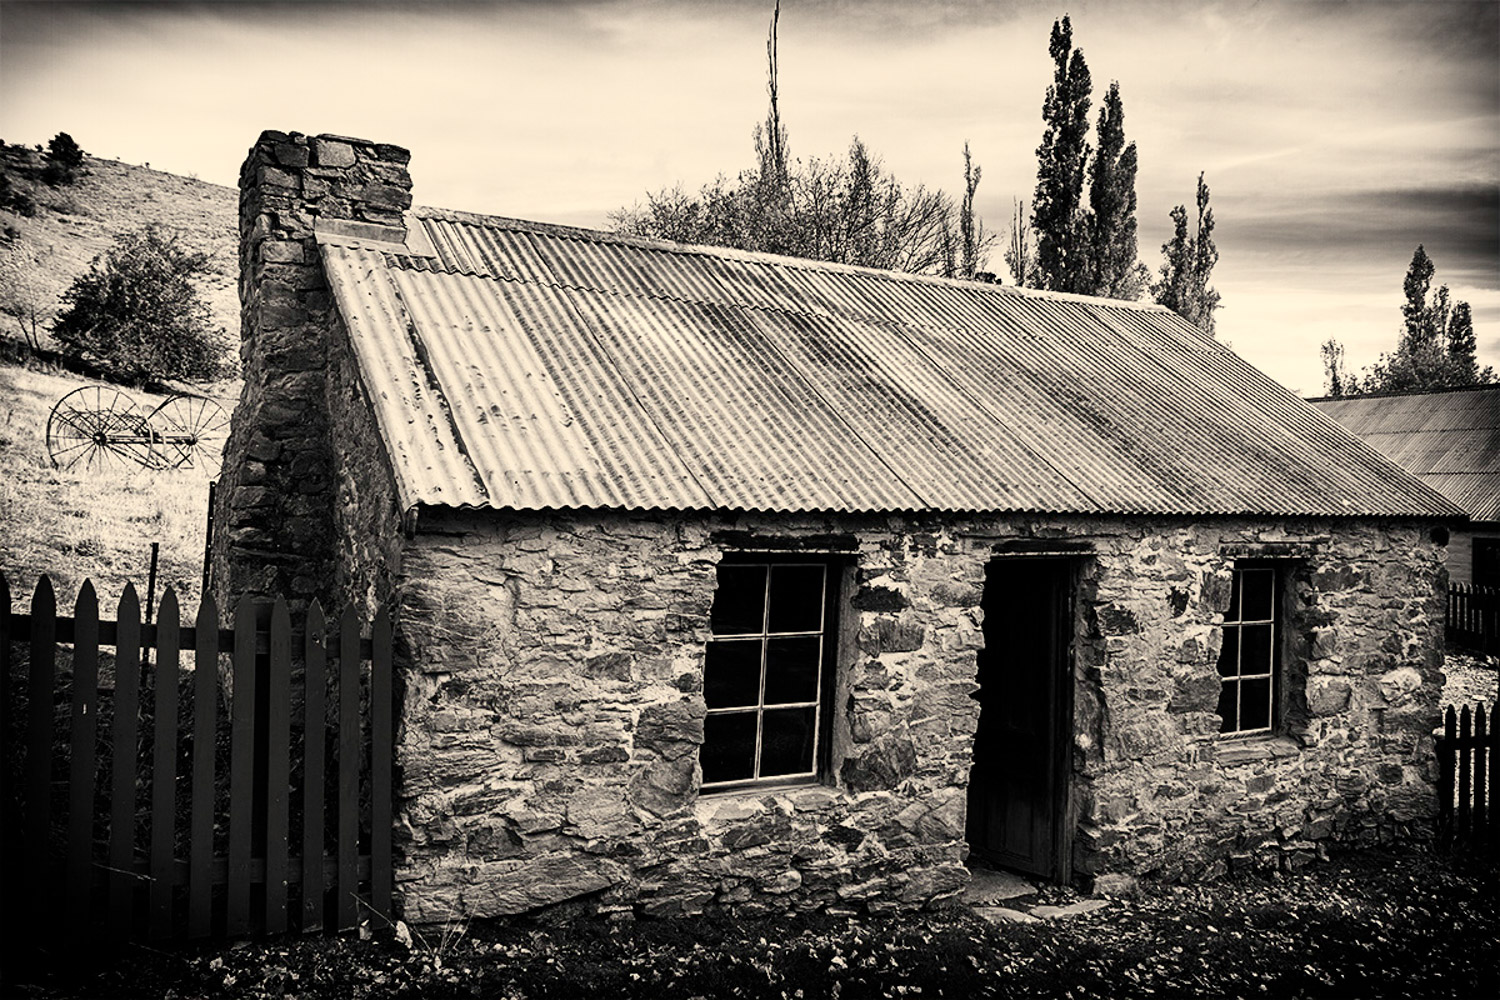 old cabin b/w - Why Your Camera Gear Doesn't Matter